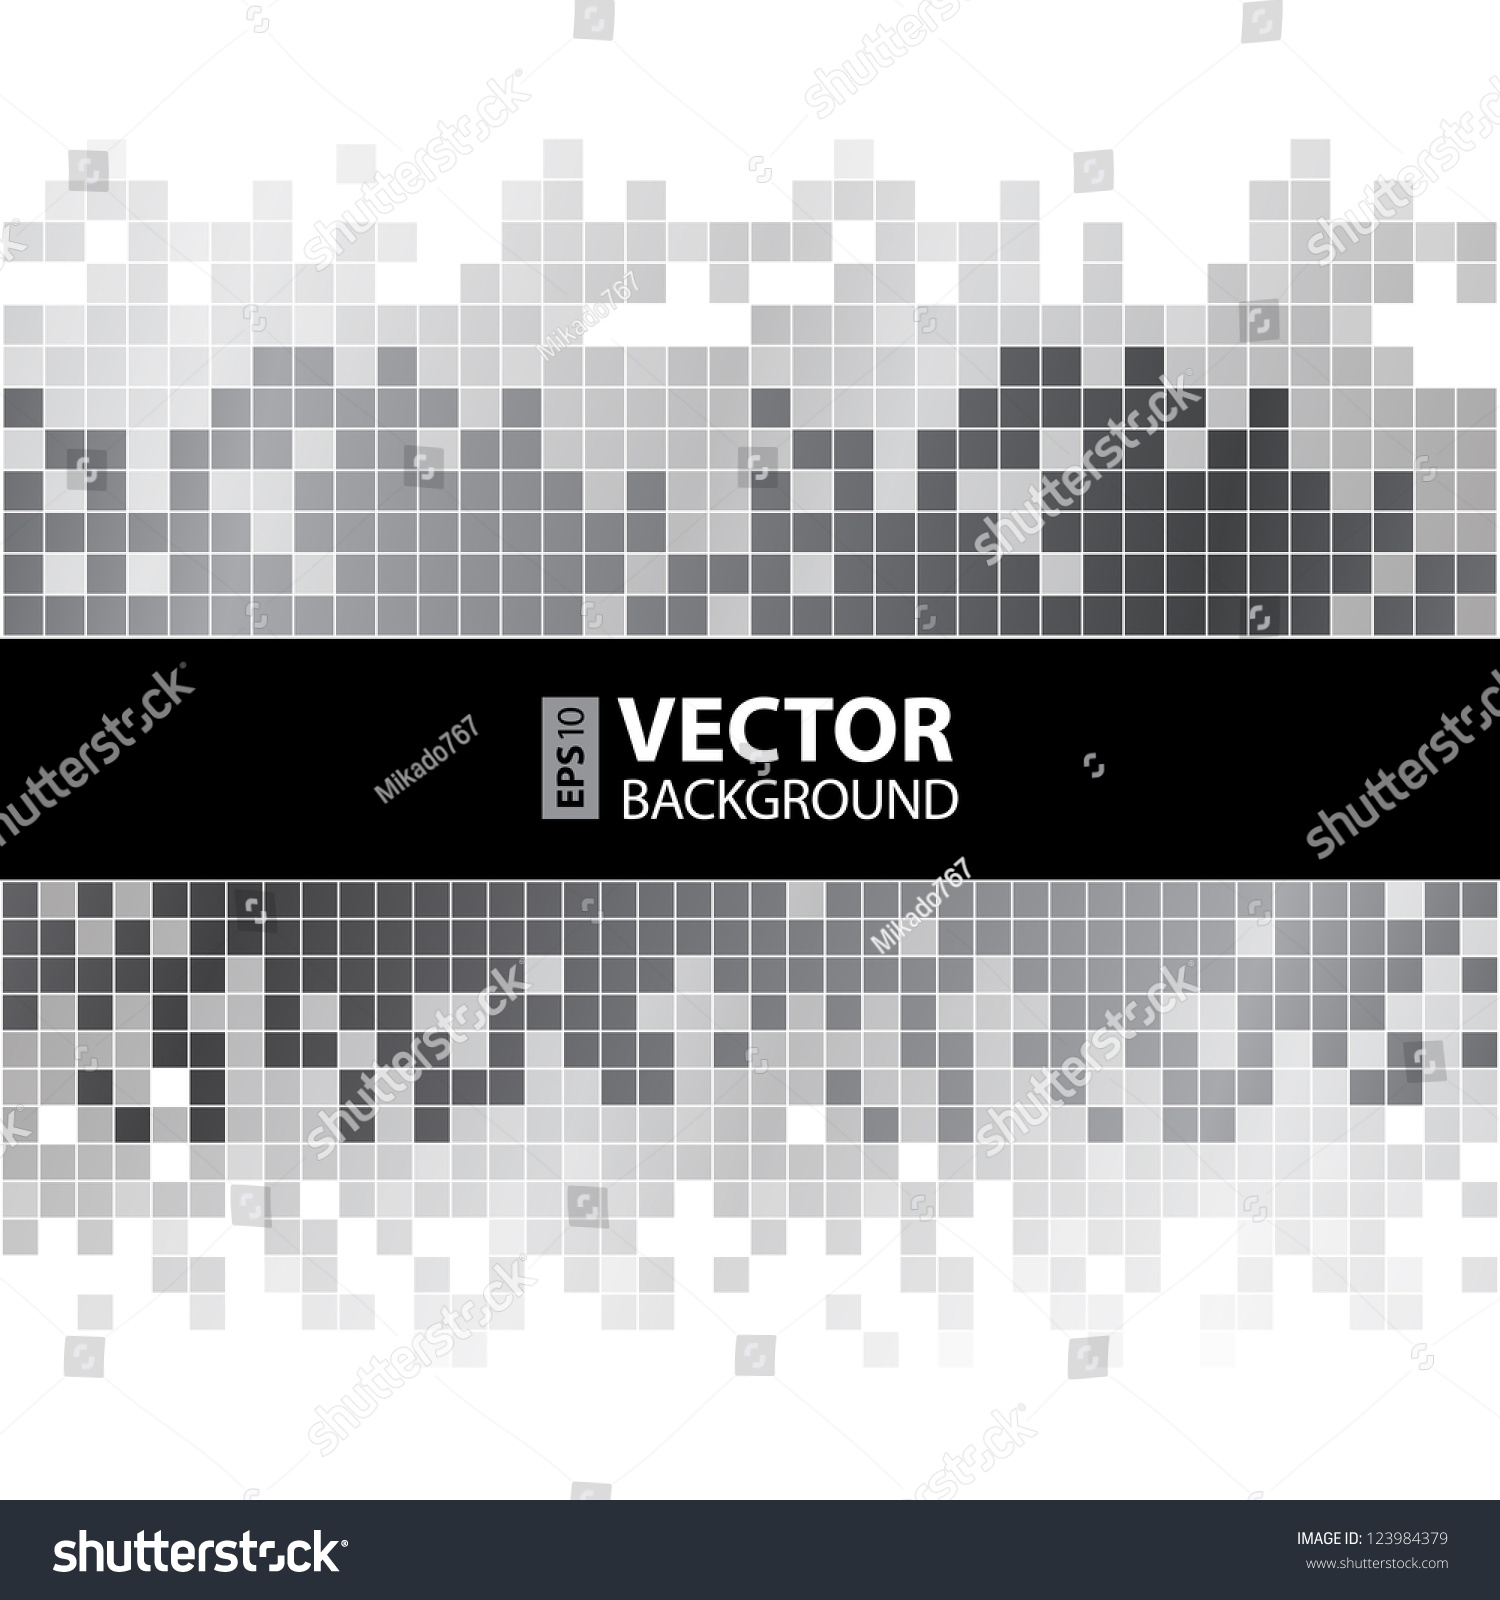 Abstract Digital Background With Grayscale Pixels